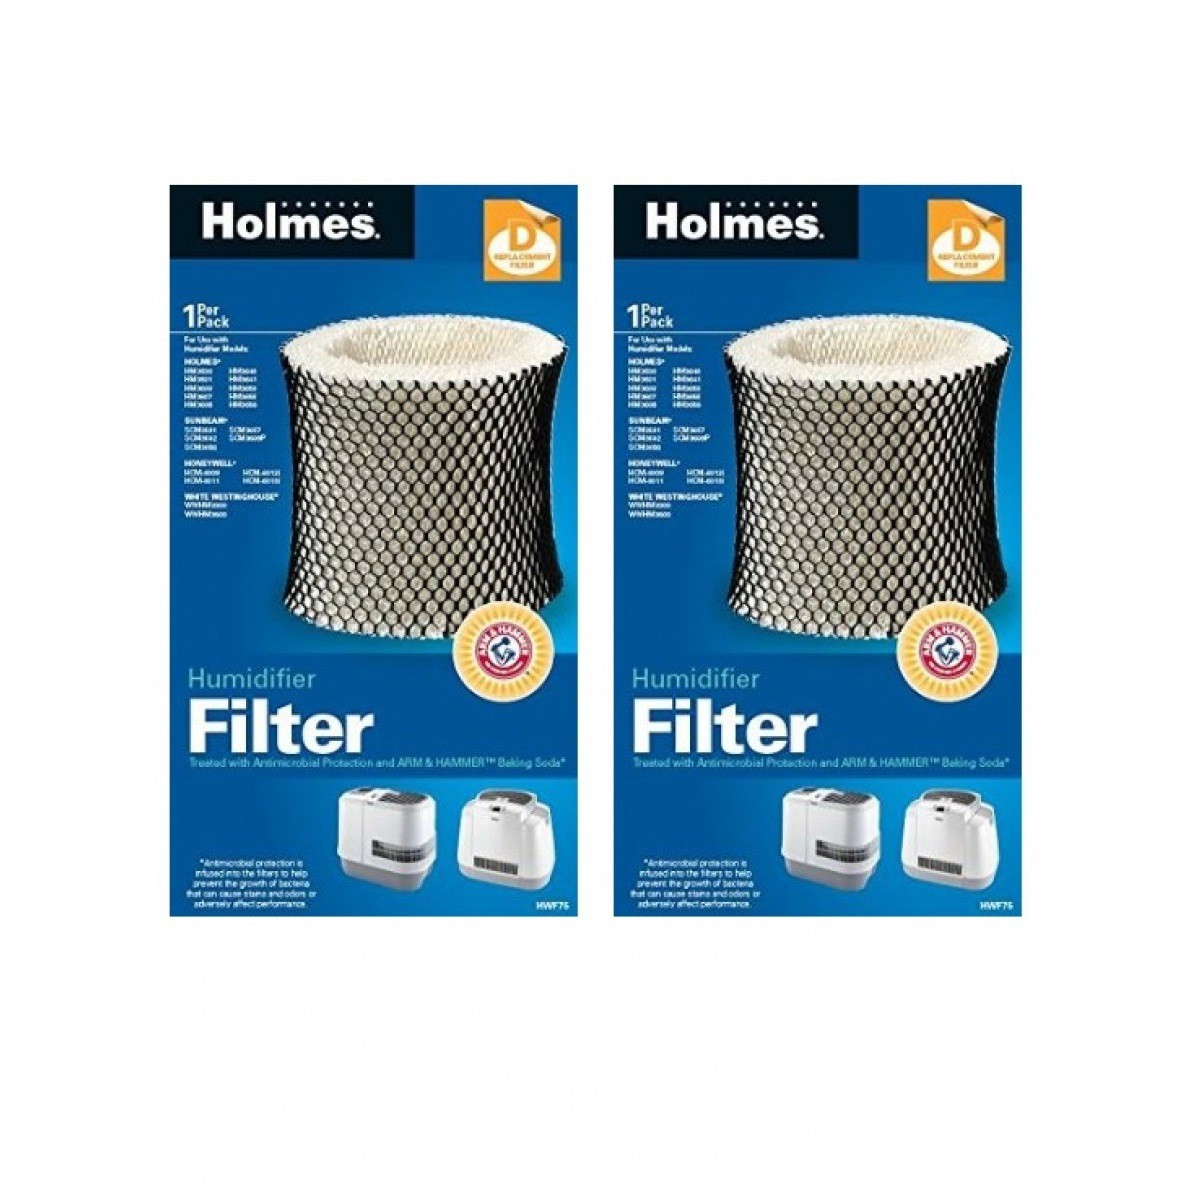 Holmes HWF75PDQ U Humidifier Wick Filter D for Holmes models HM3501  #015190